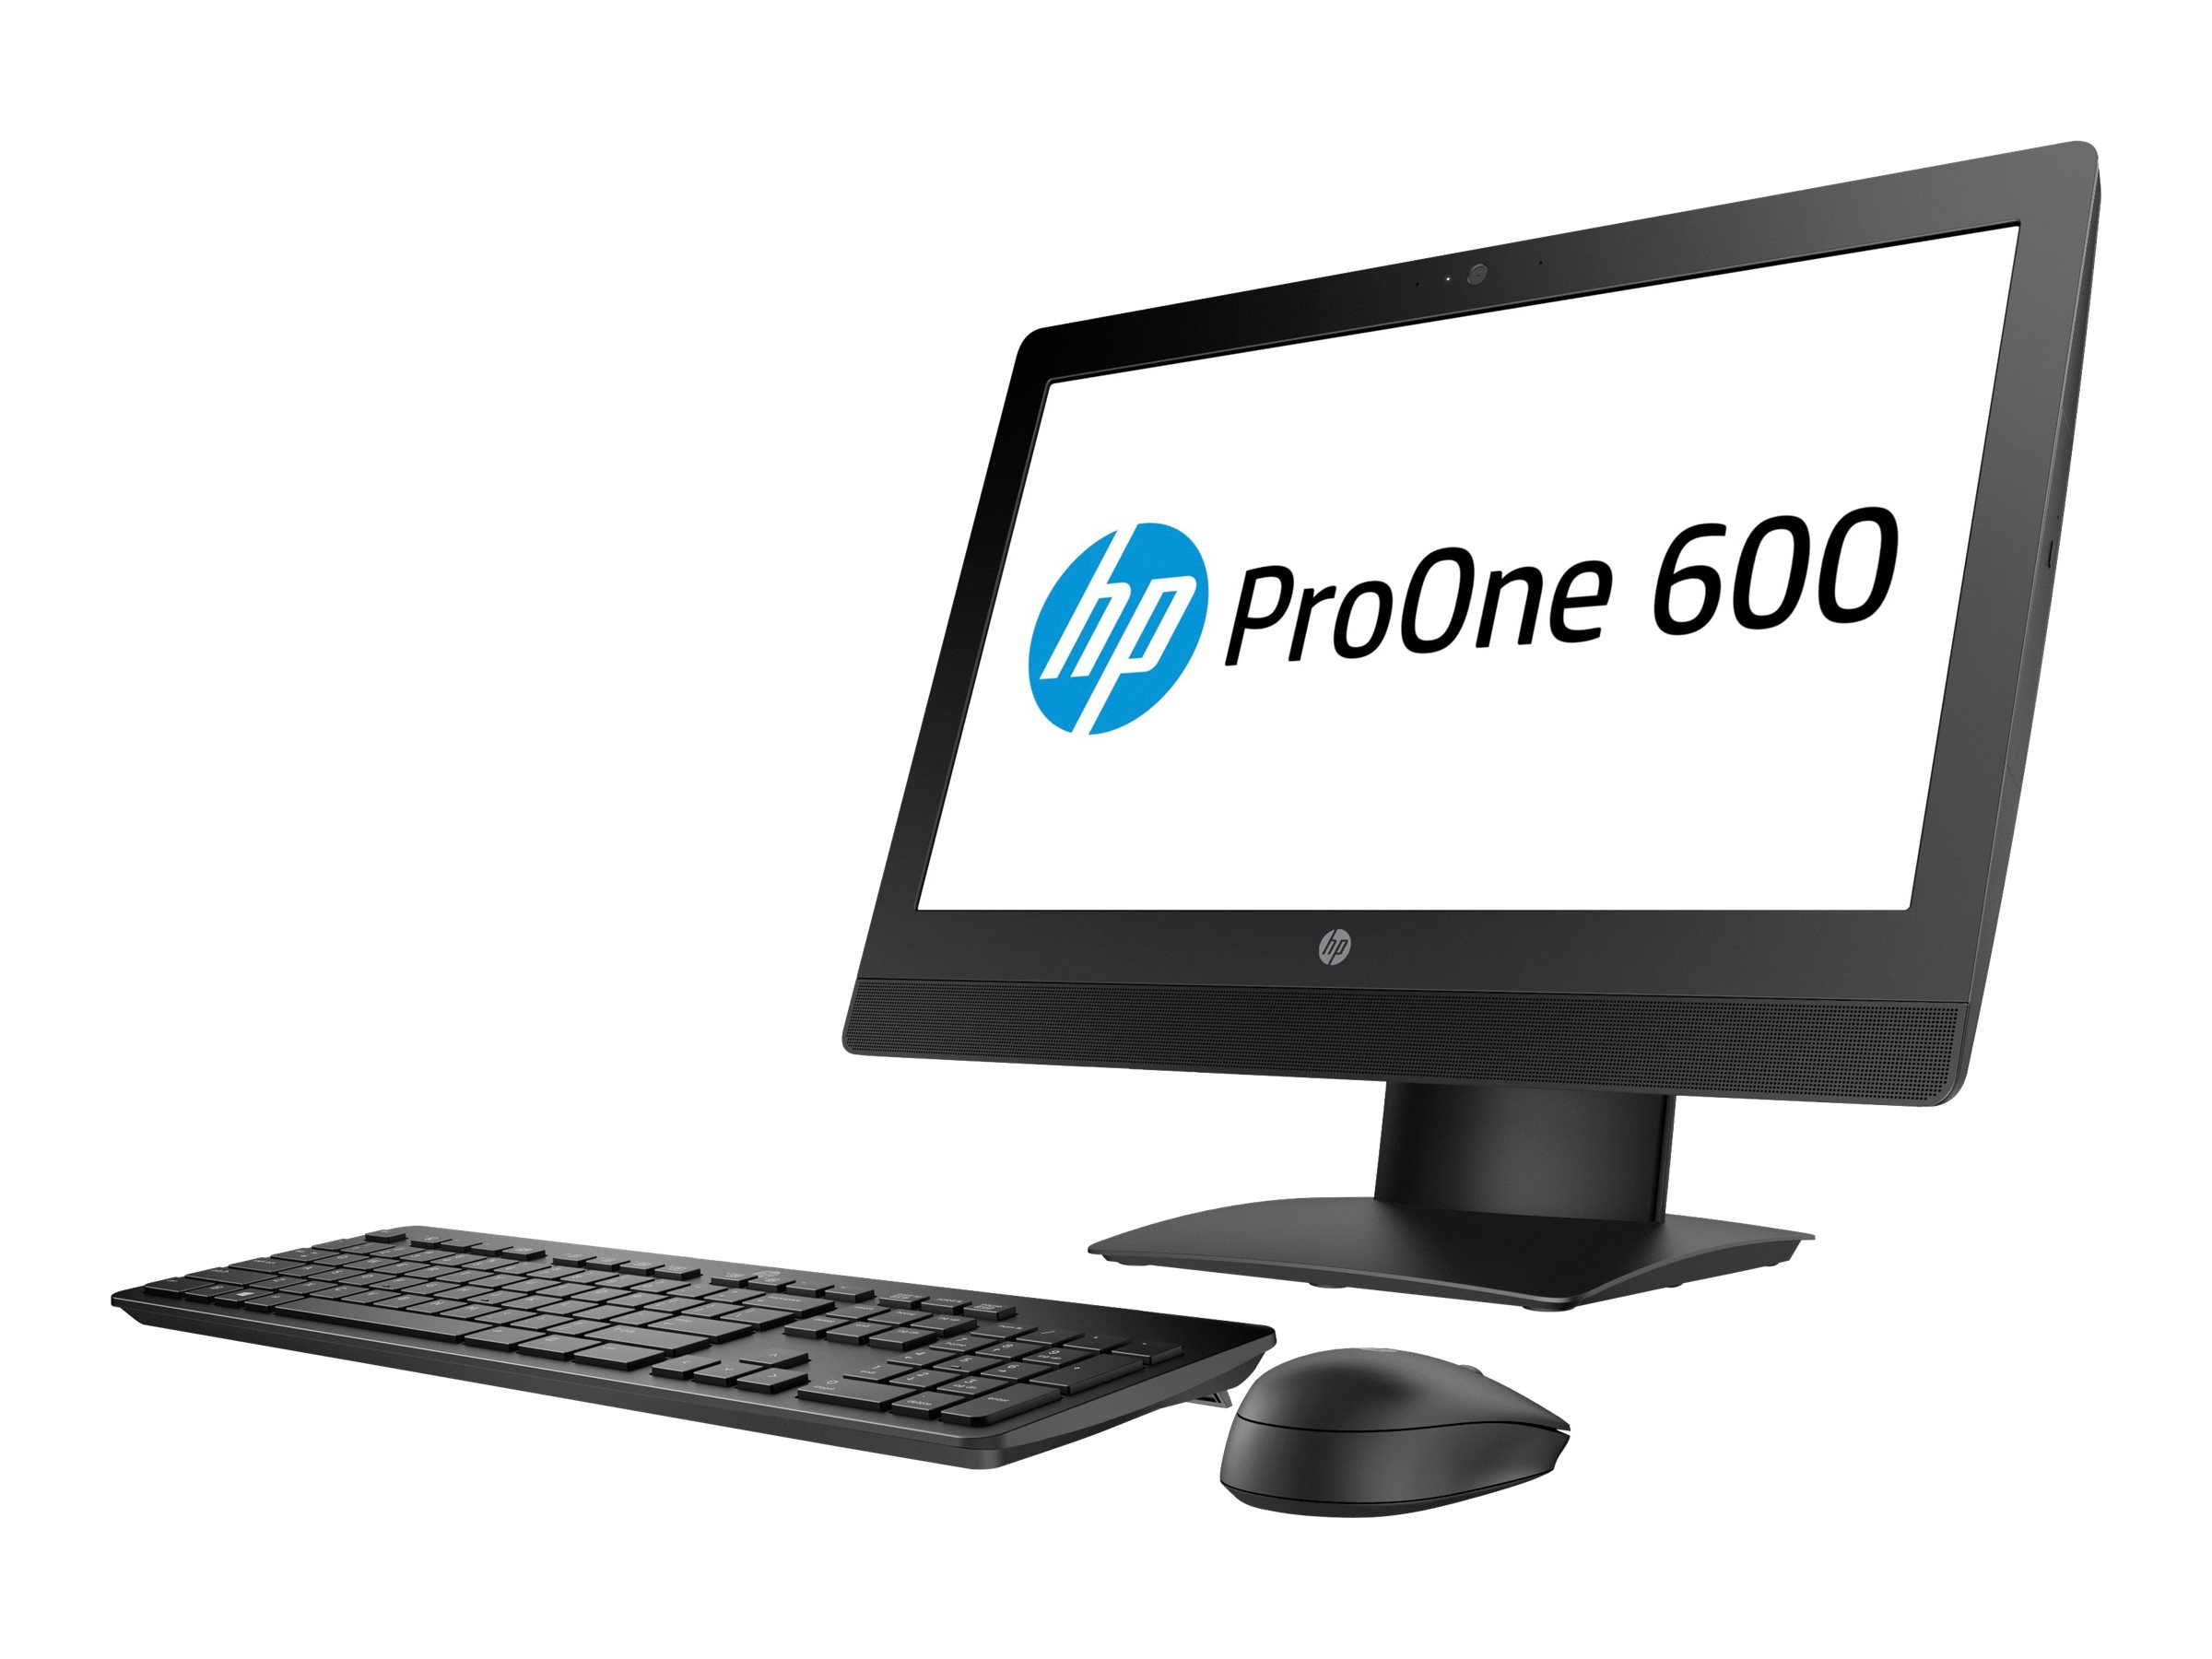 HP ProOne 600 G3 - All-in-One (Komplettlösung) - 1 x Core i5 7500 / 3.4 GHz - RAM 8 GB - HDD 500 GB - DVD-Writer